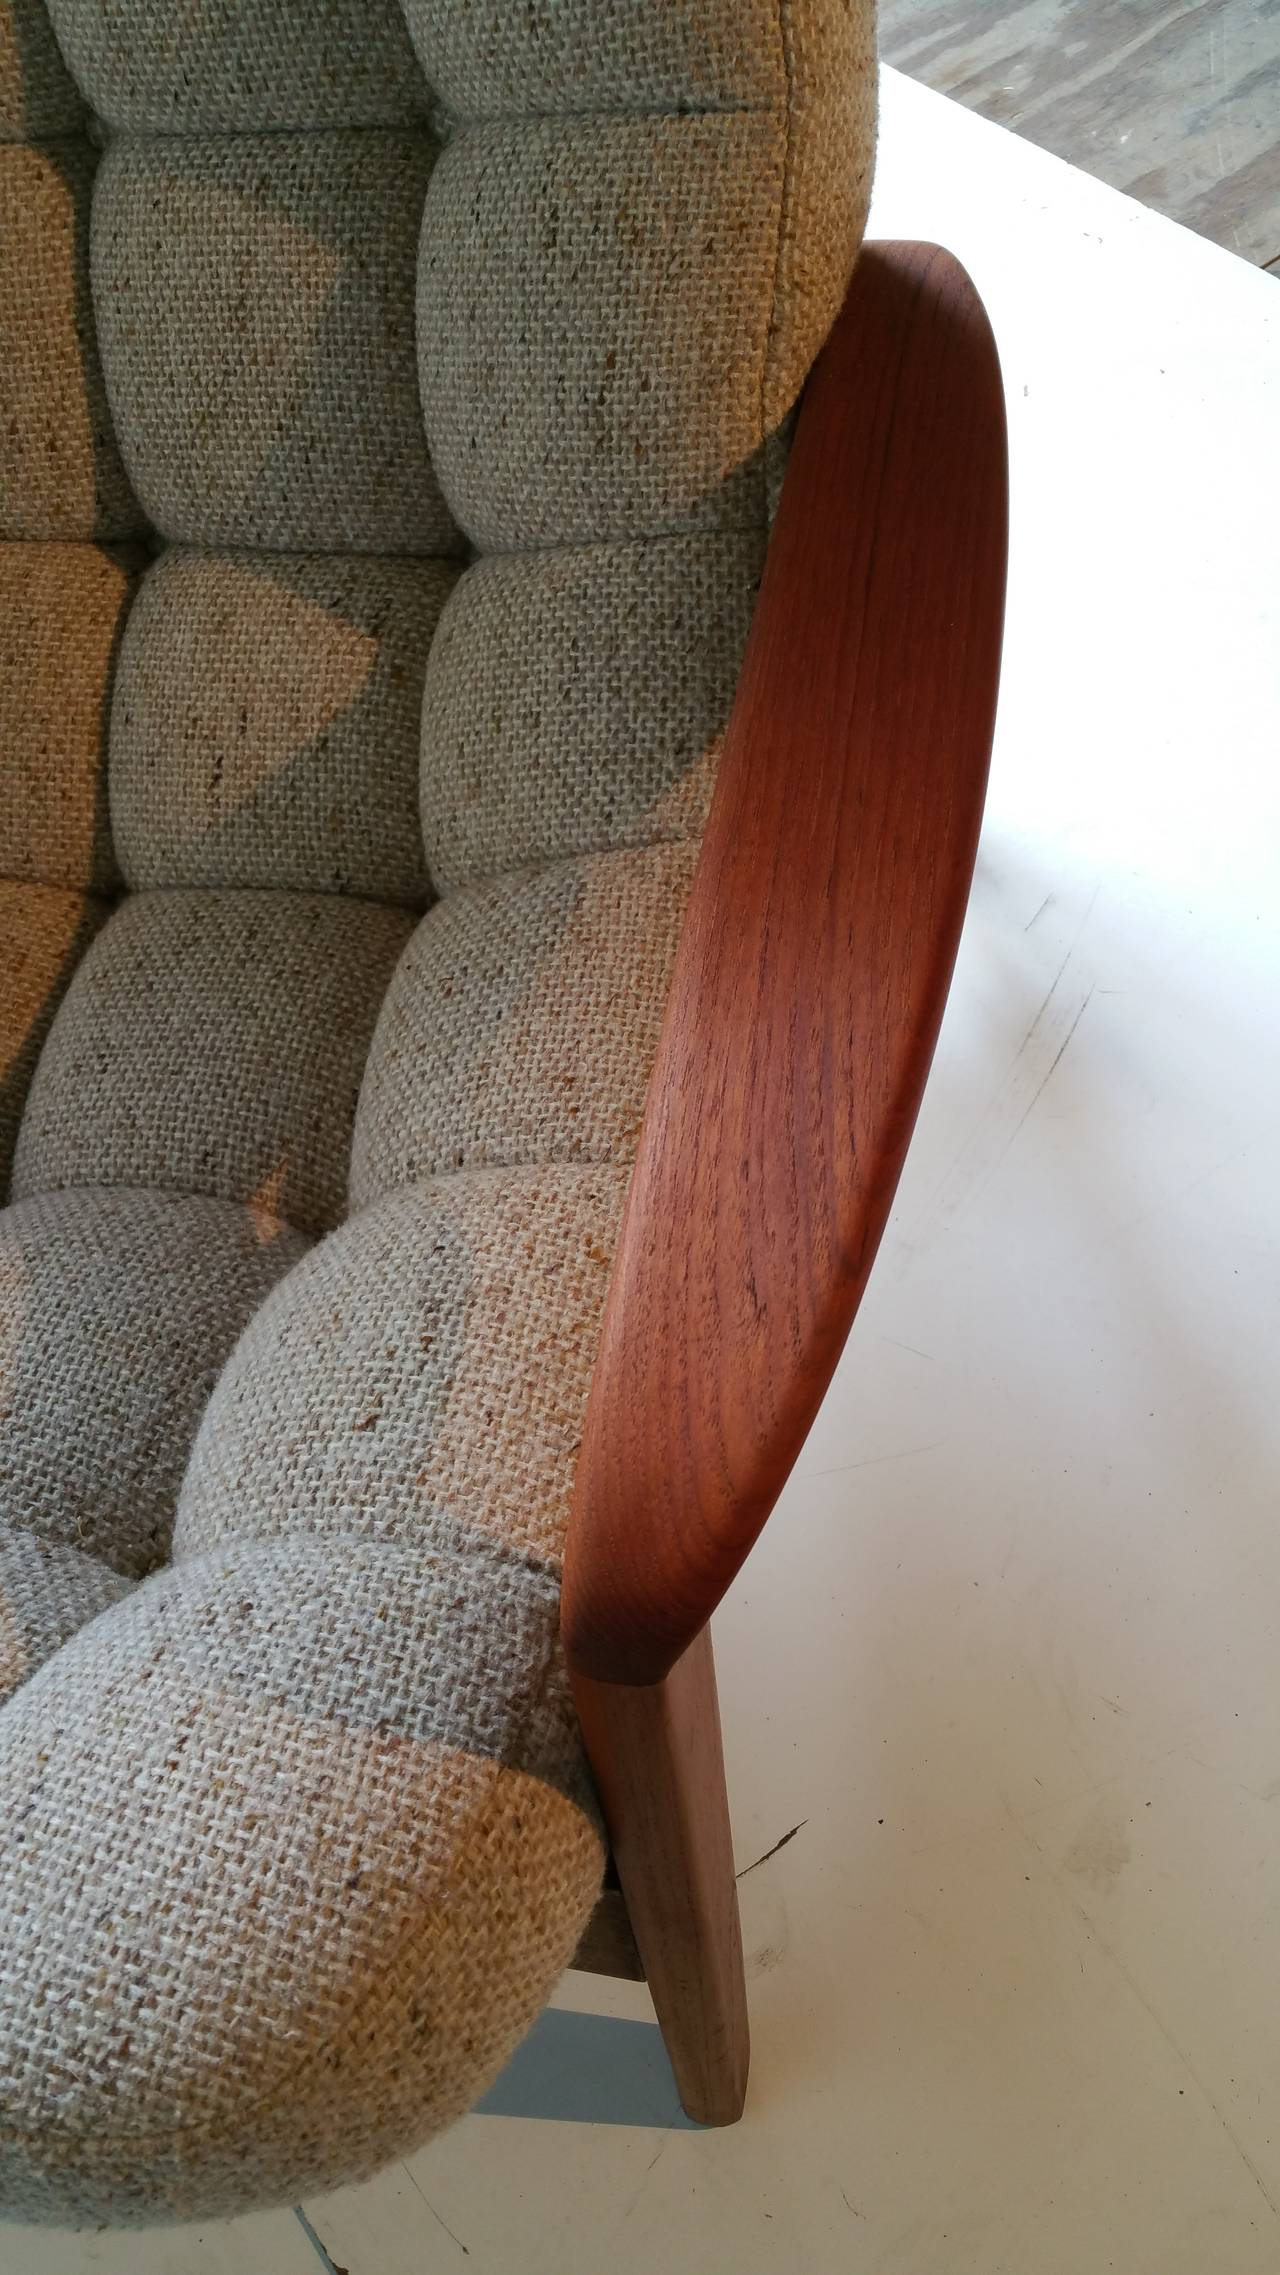 Teak Floating Egg Sofa By R Huber And Co Mid Century Danish At 1stdibs